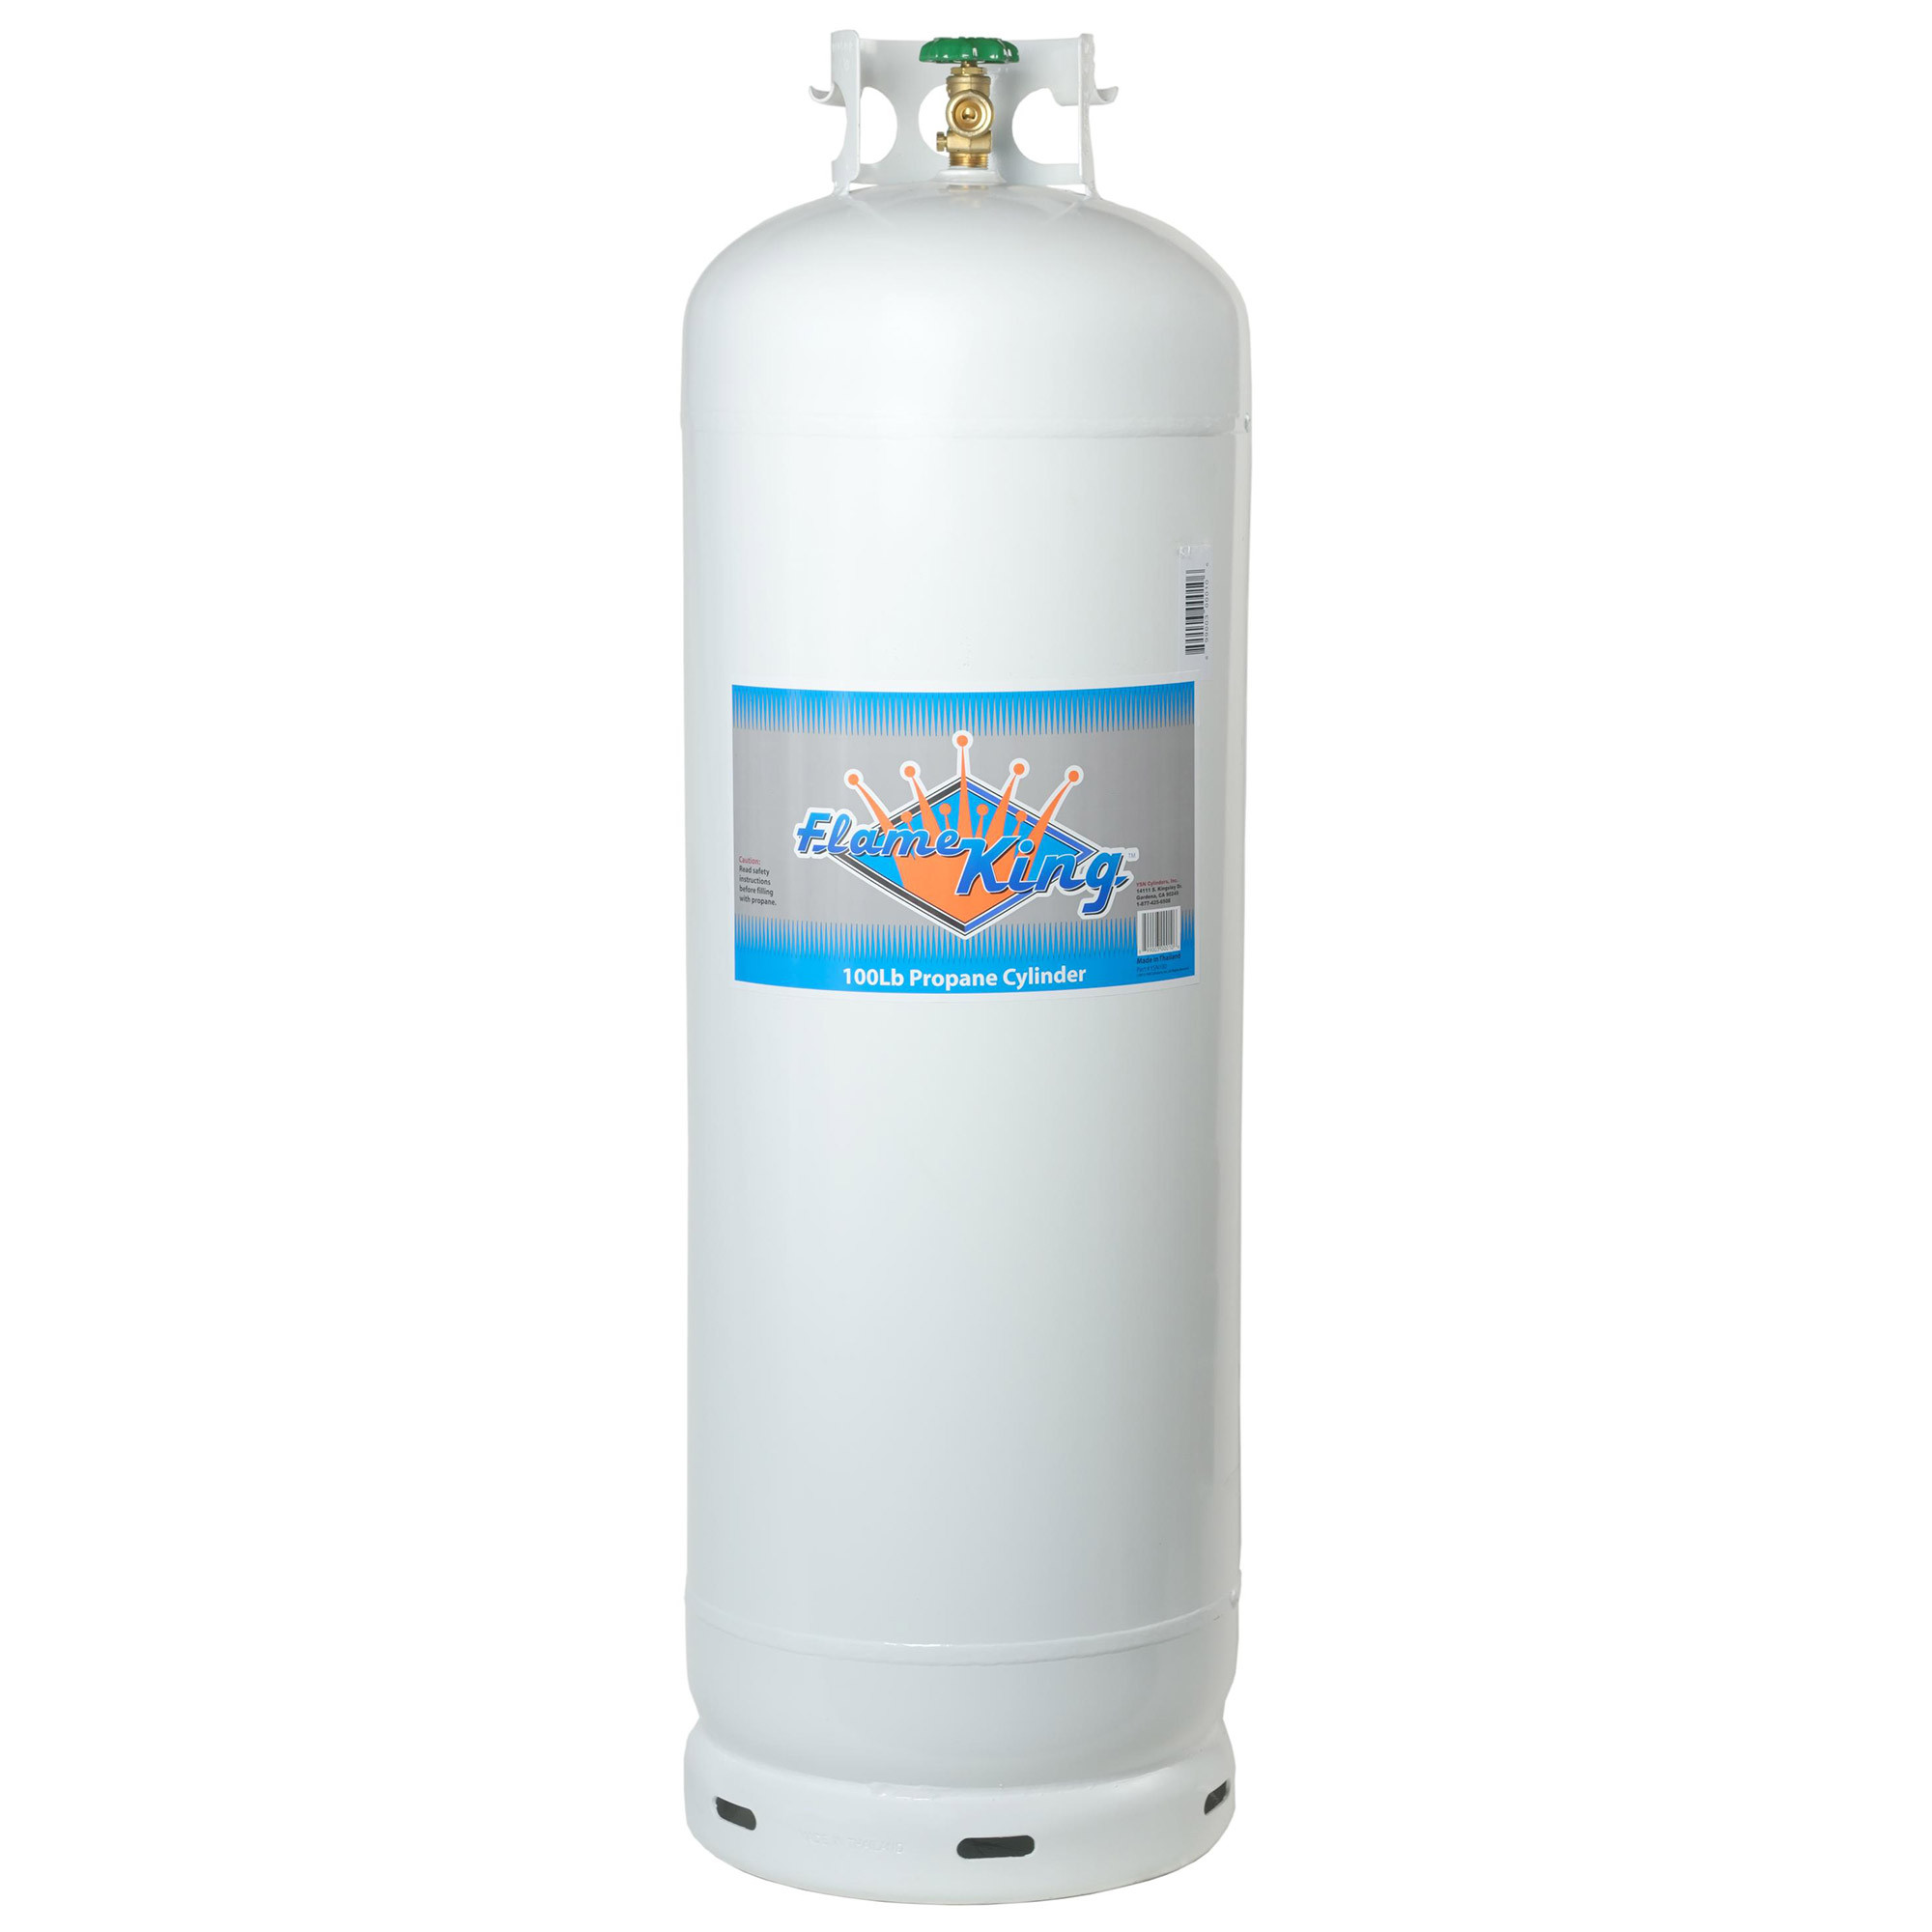 Flame King 100 lb Empty Steel Propane Cylinder with POL V...